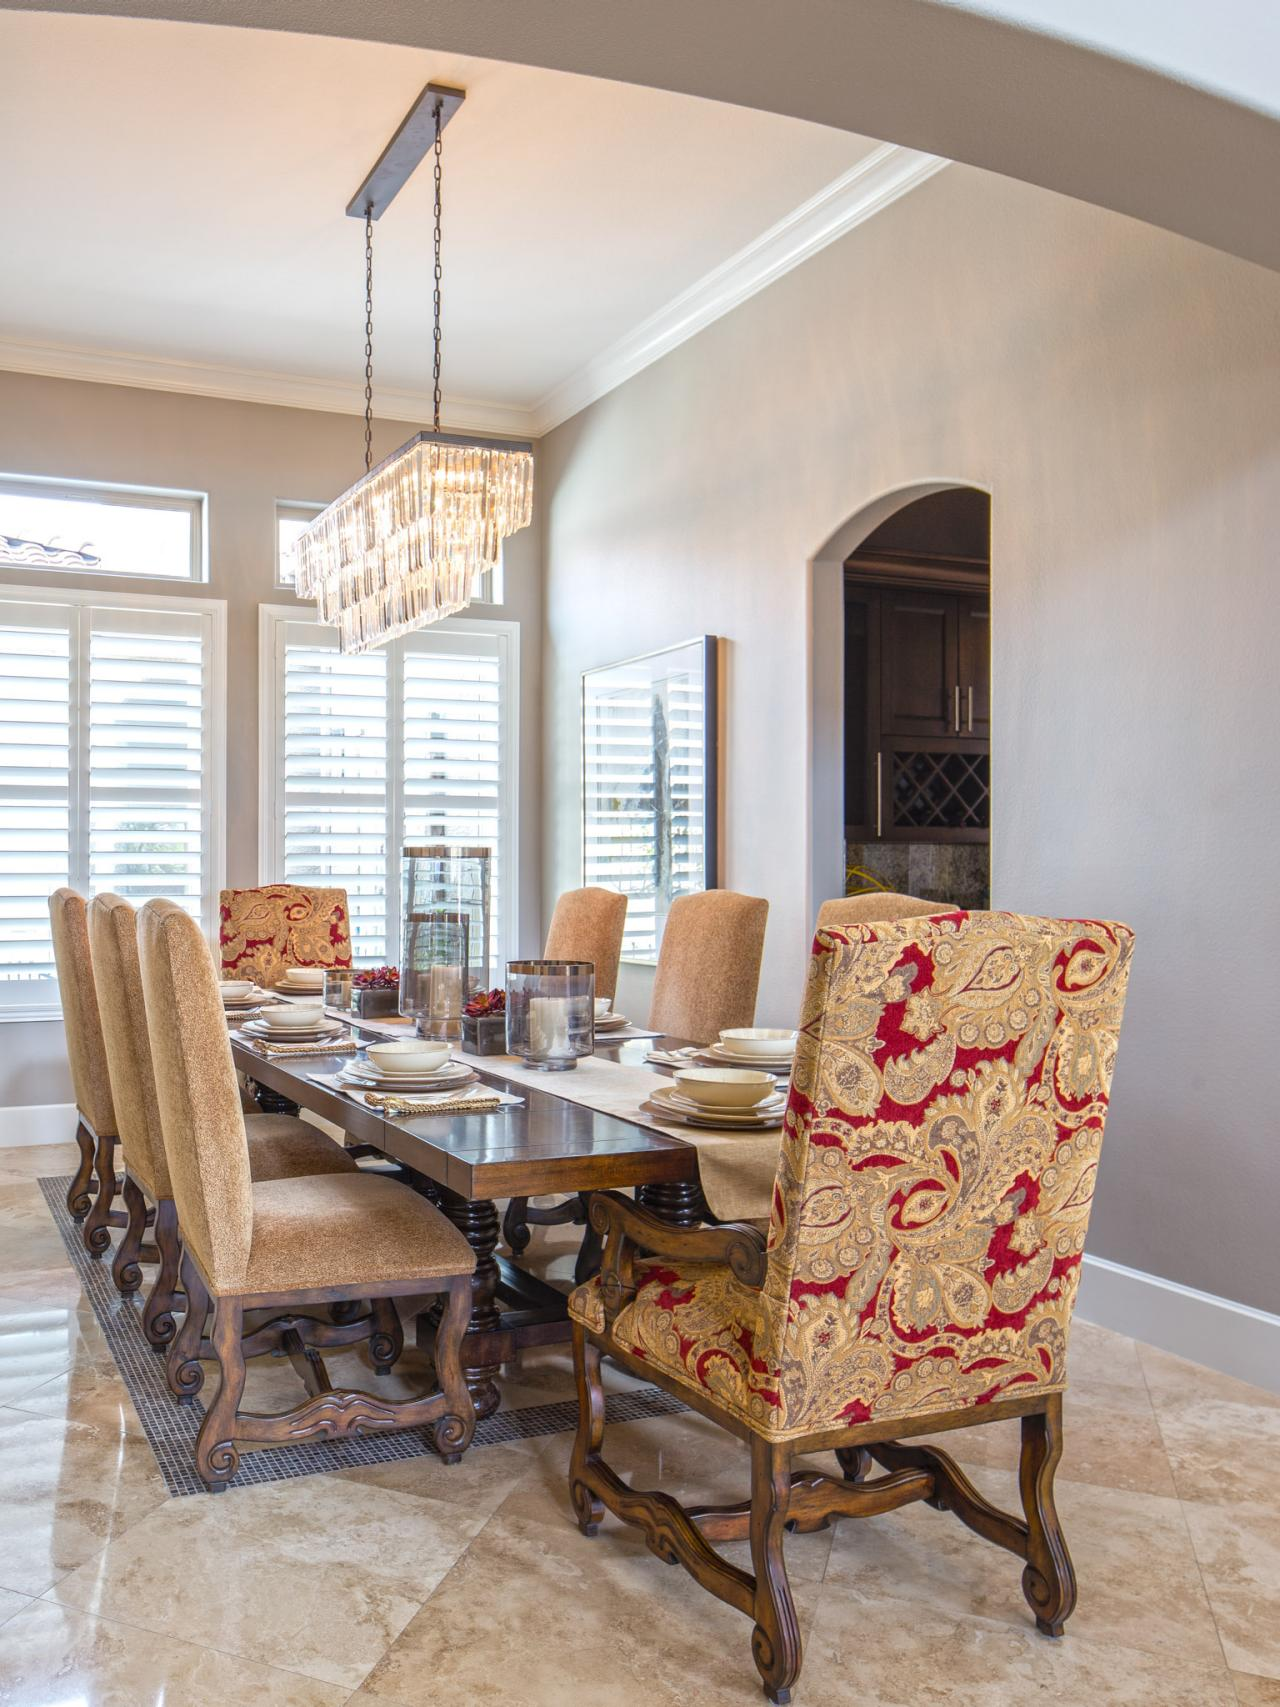 Photos property brothers at home hgtv for Dining room 101 heswall